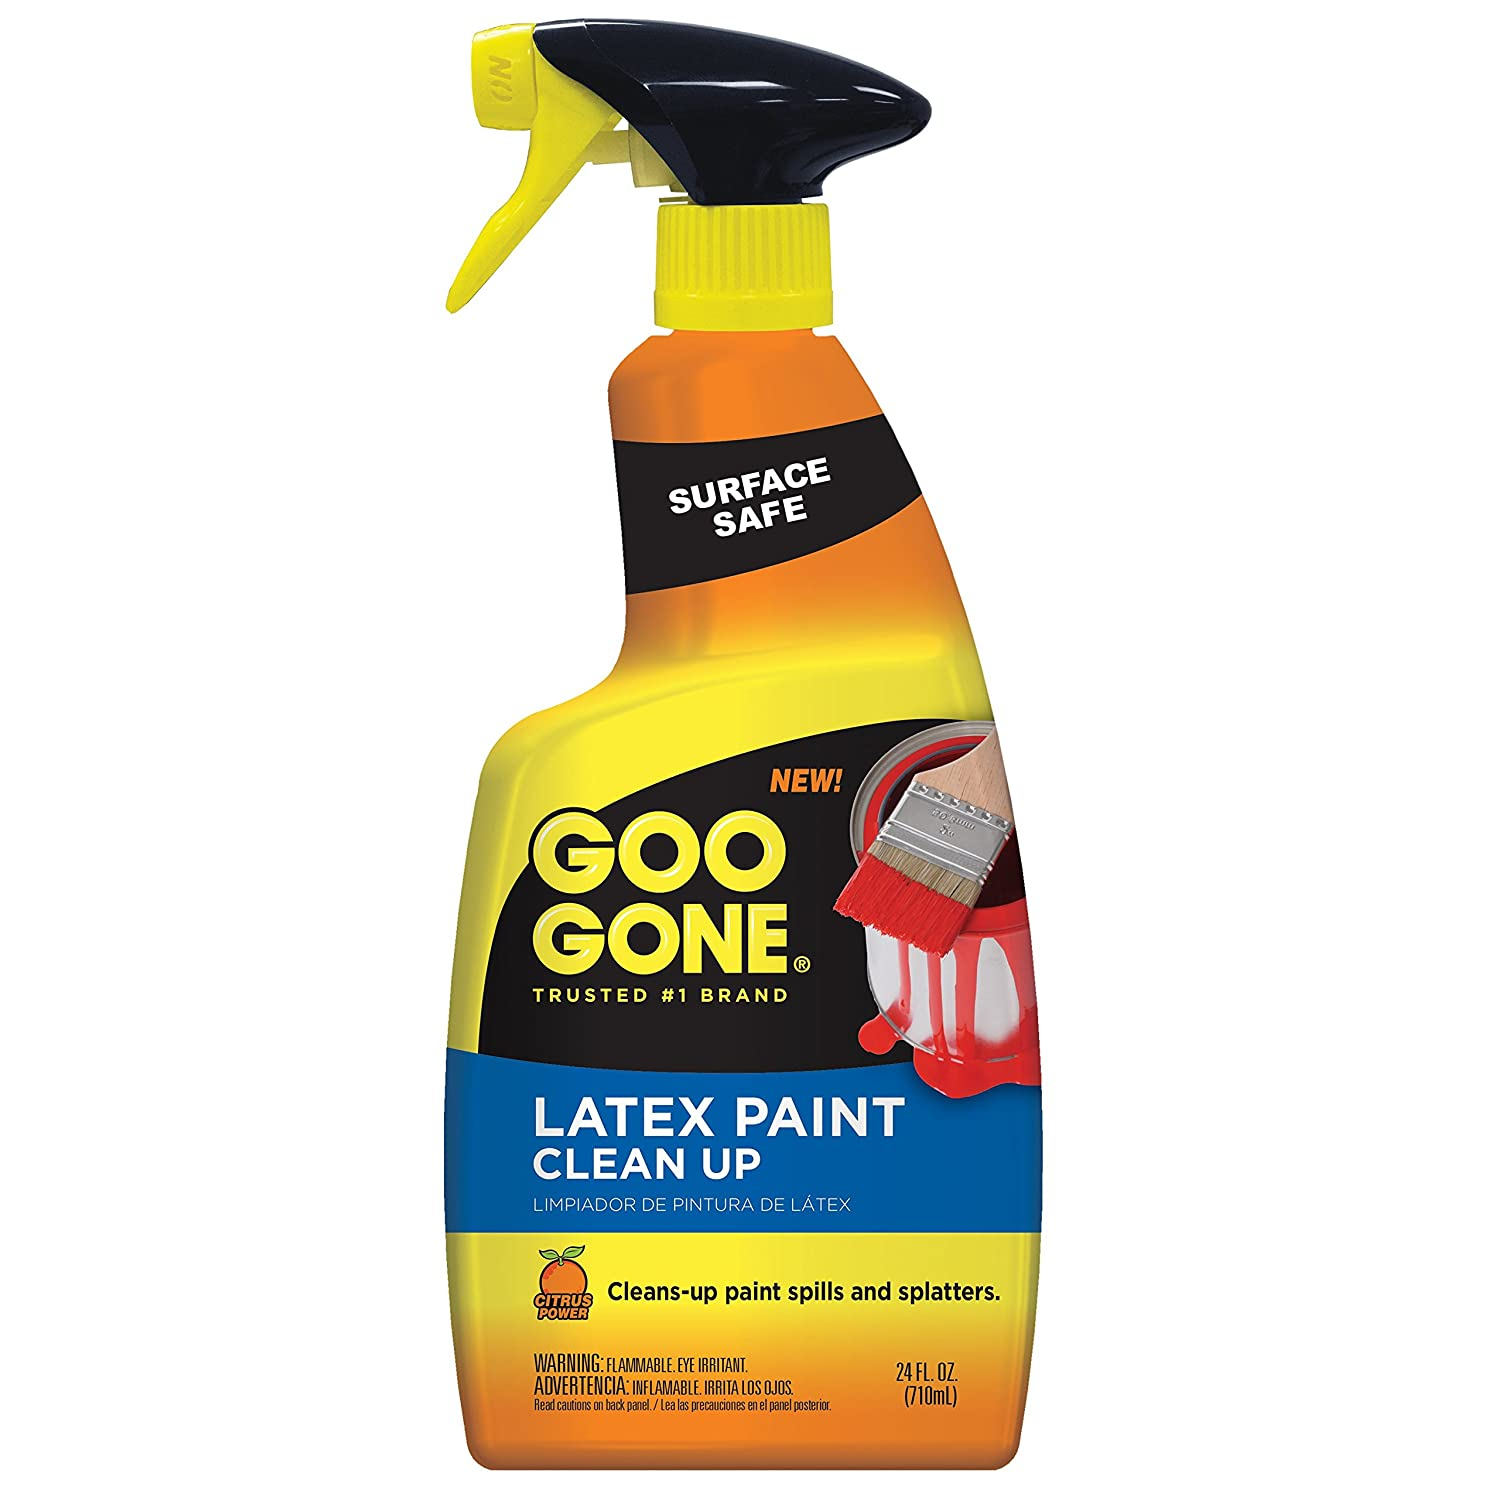 Amazon.com: Goo Gone Latex Paint Clean-Up Spray, 24 fl oz: Home ...